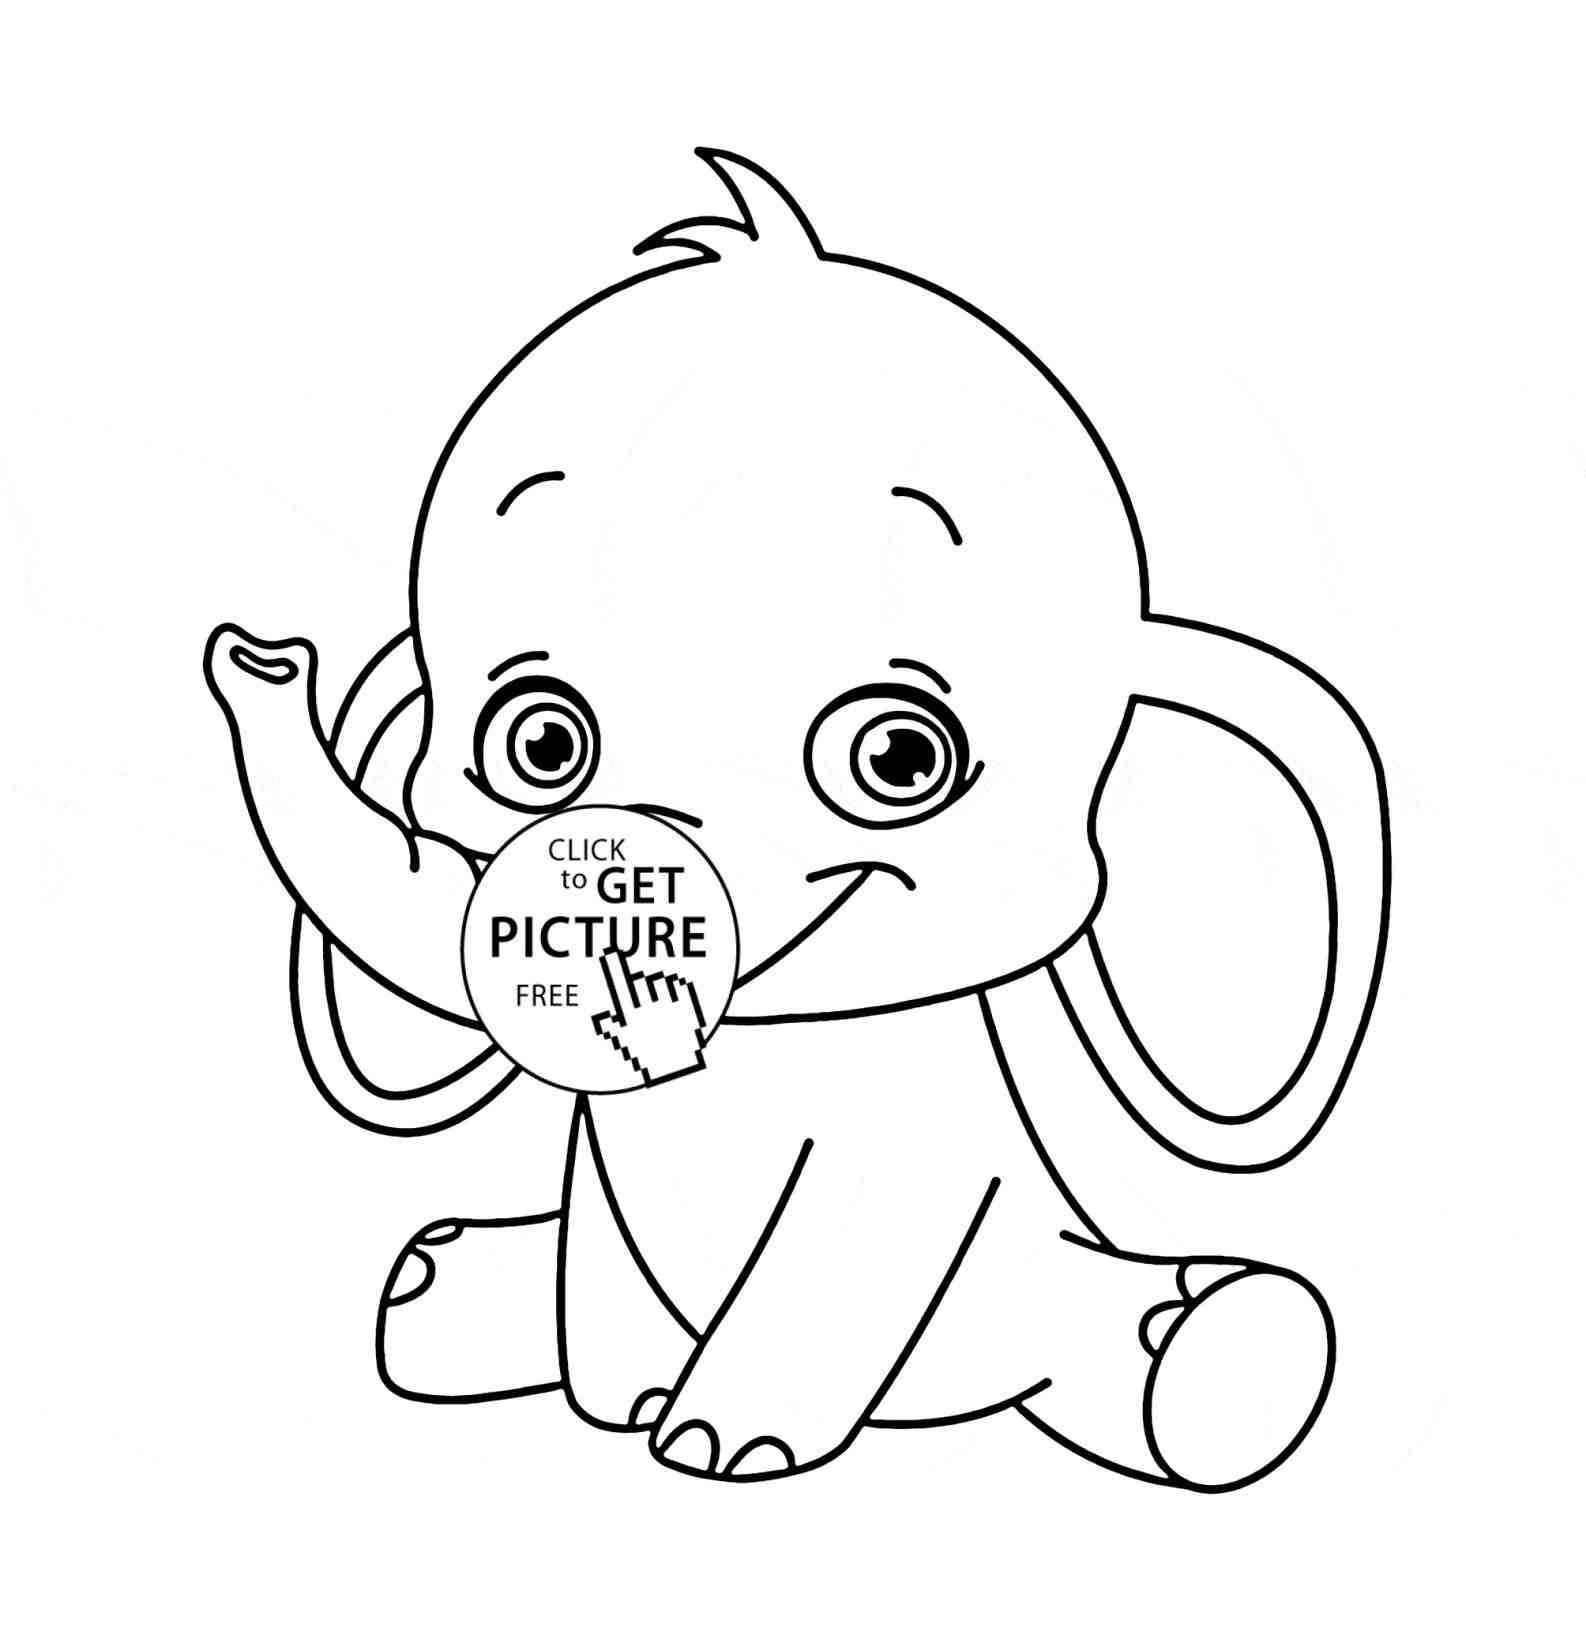 1586x1643 Baby Elephant Drawing For Kids. How Tot Draw An Elephant. Elephant